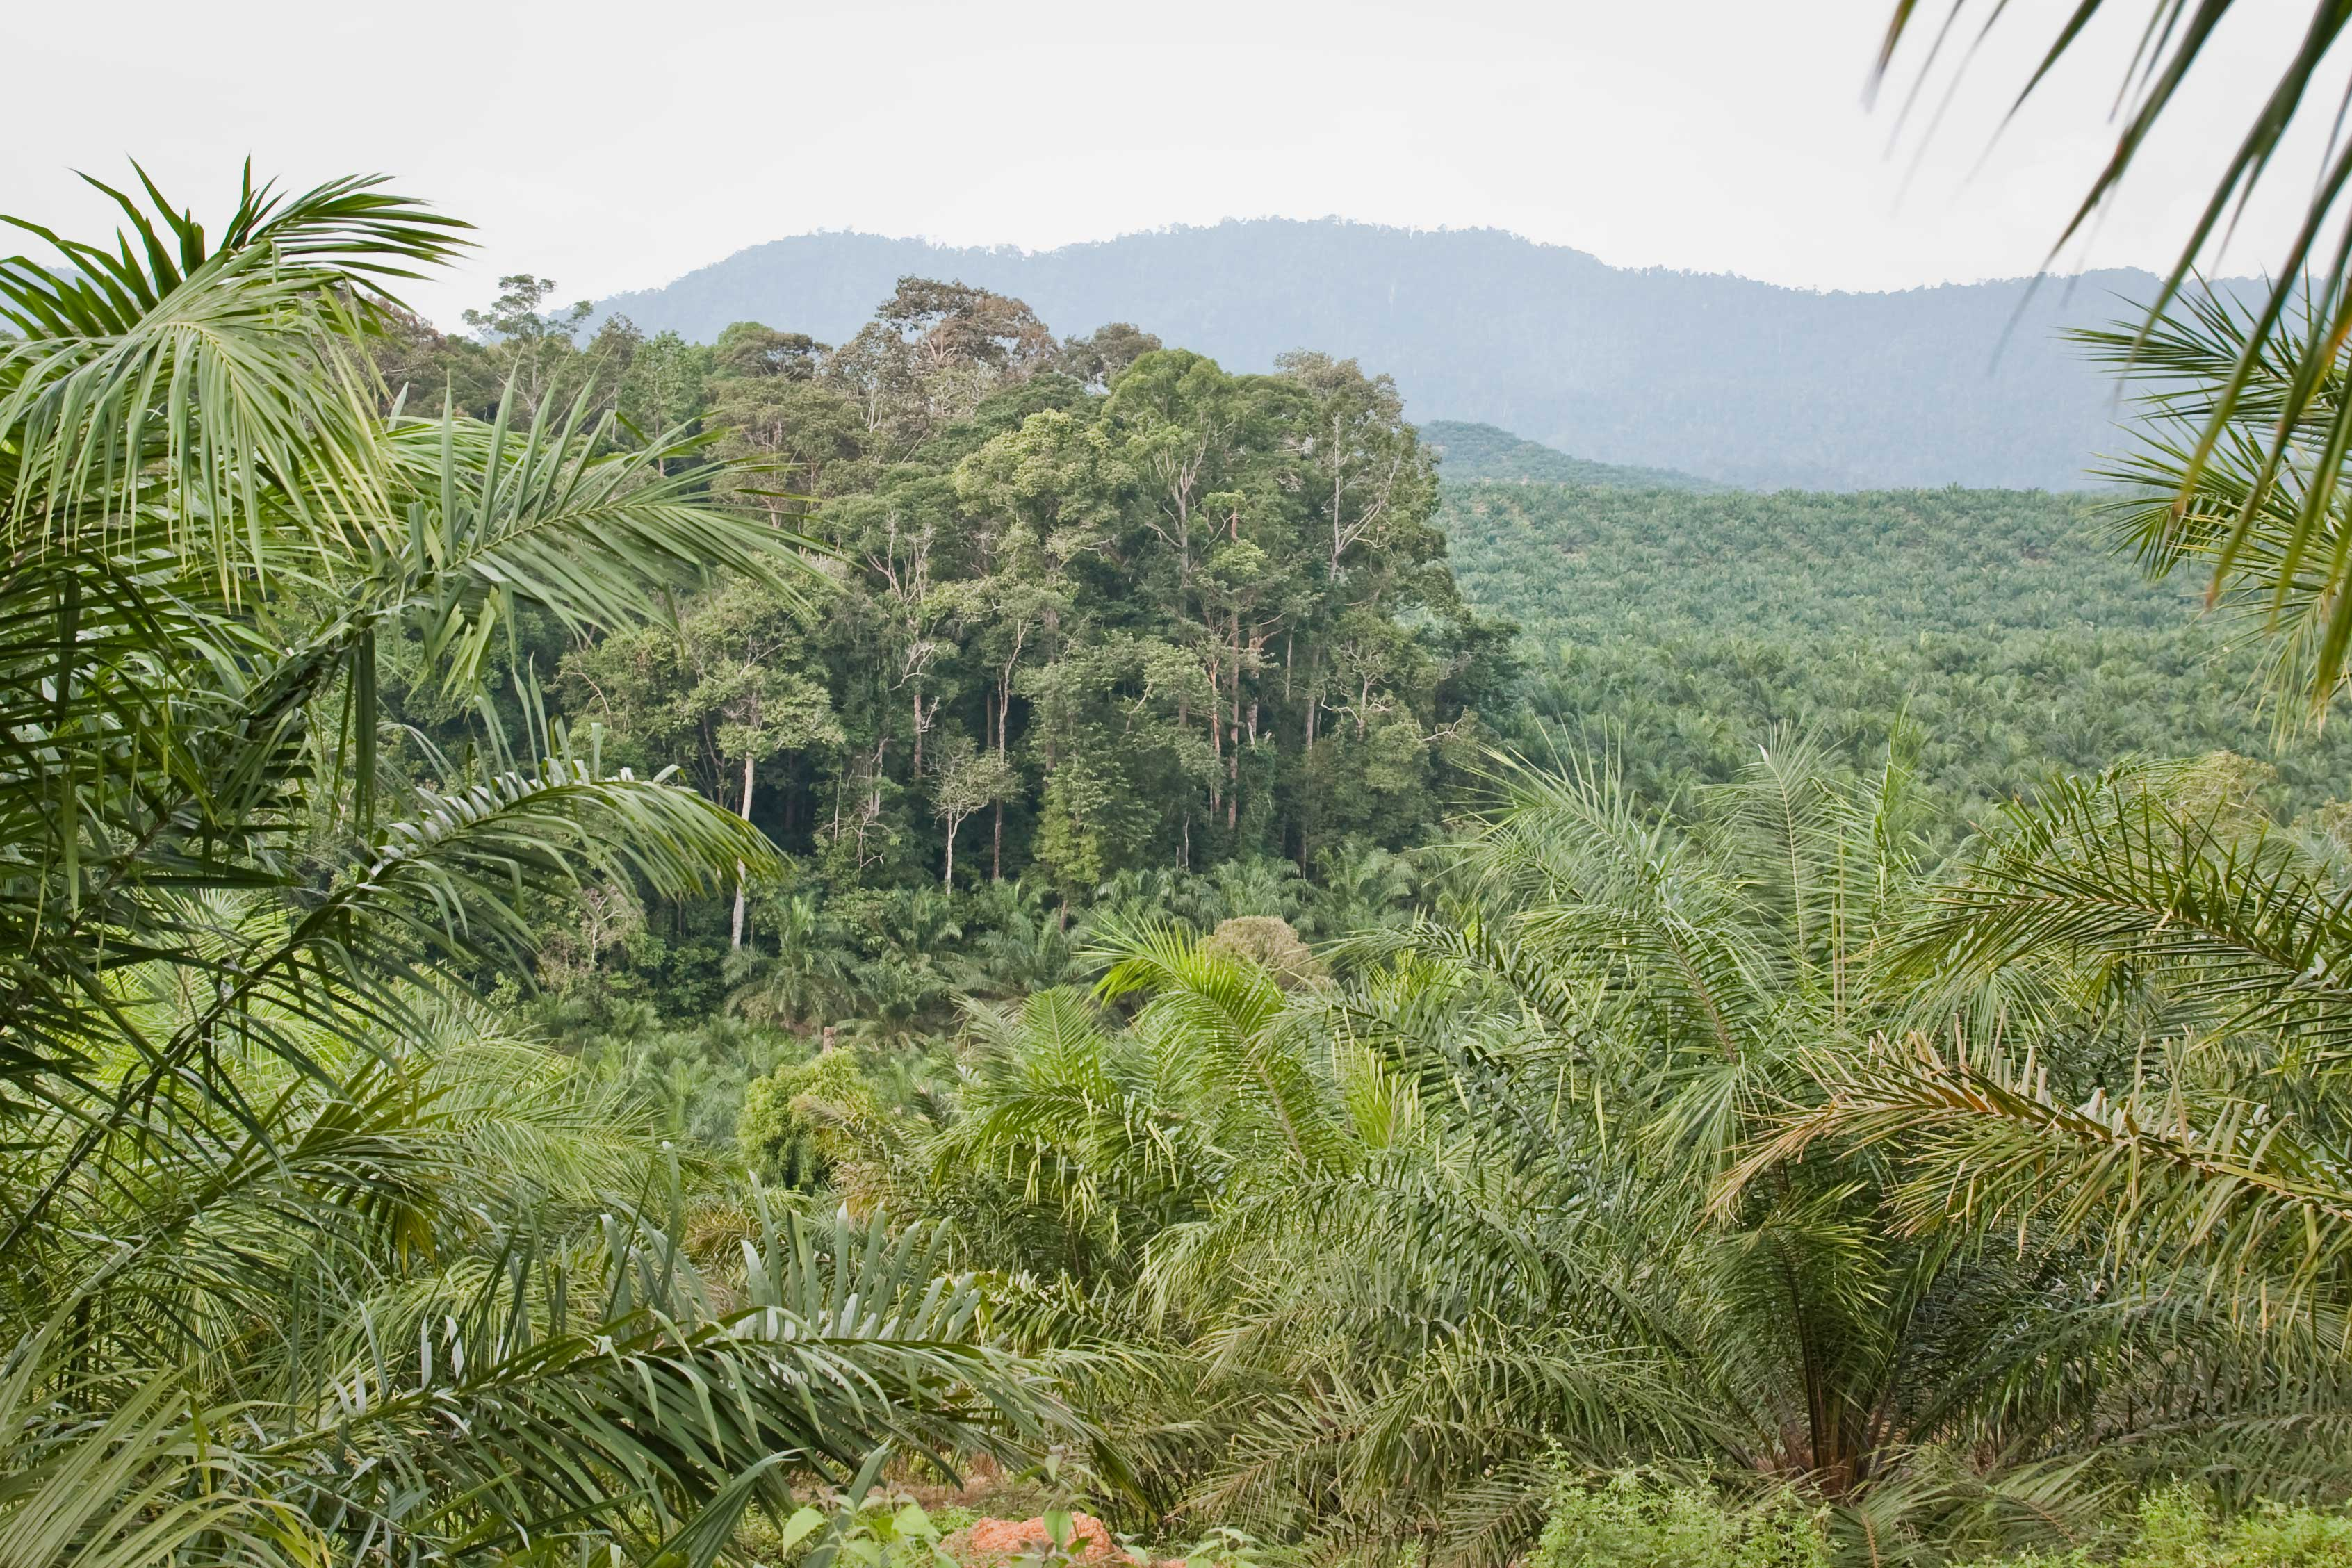 A research forest right next to an oil palm field